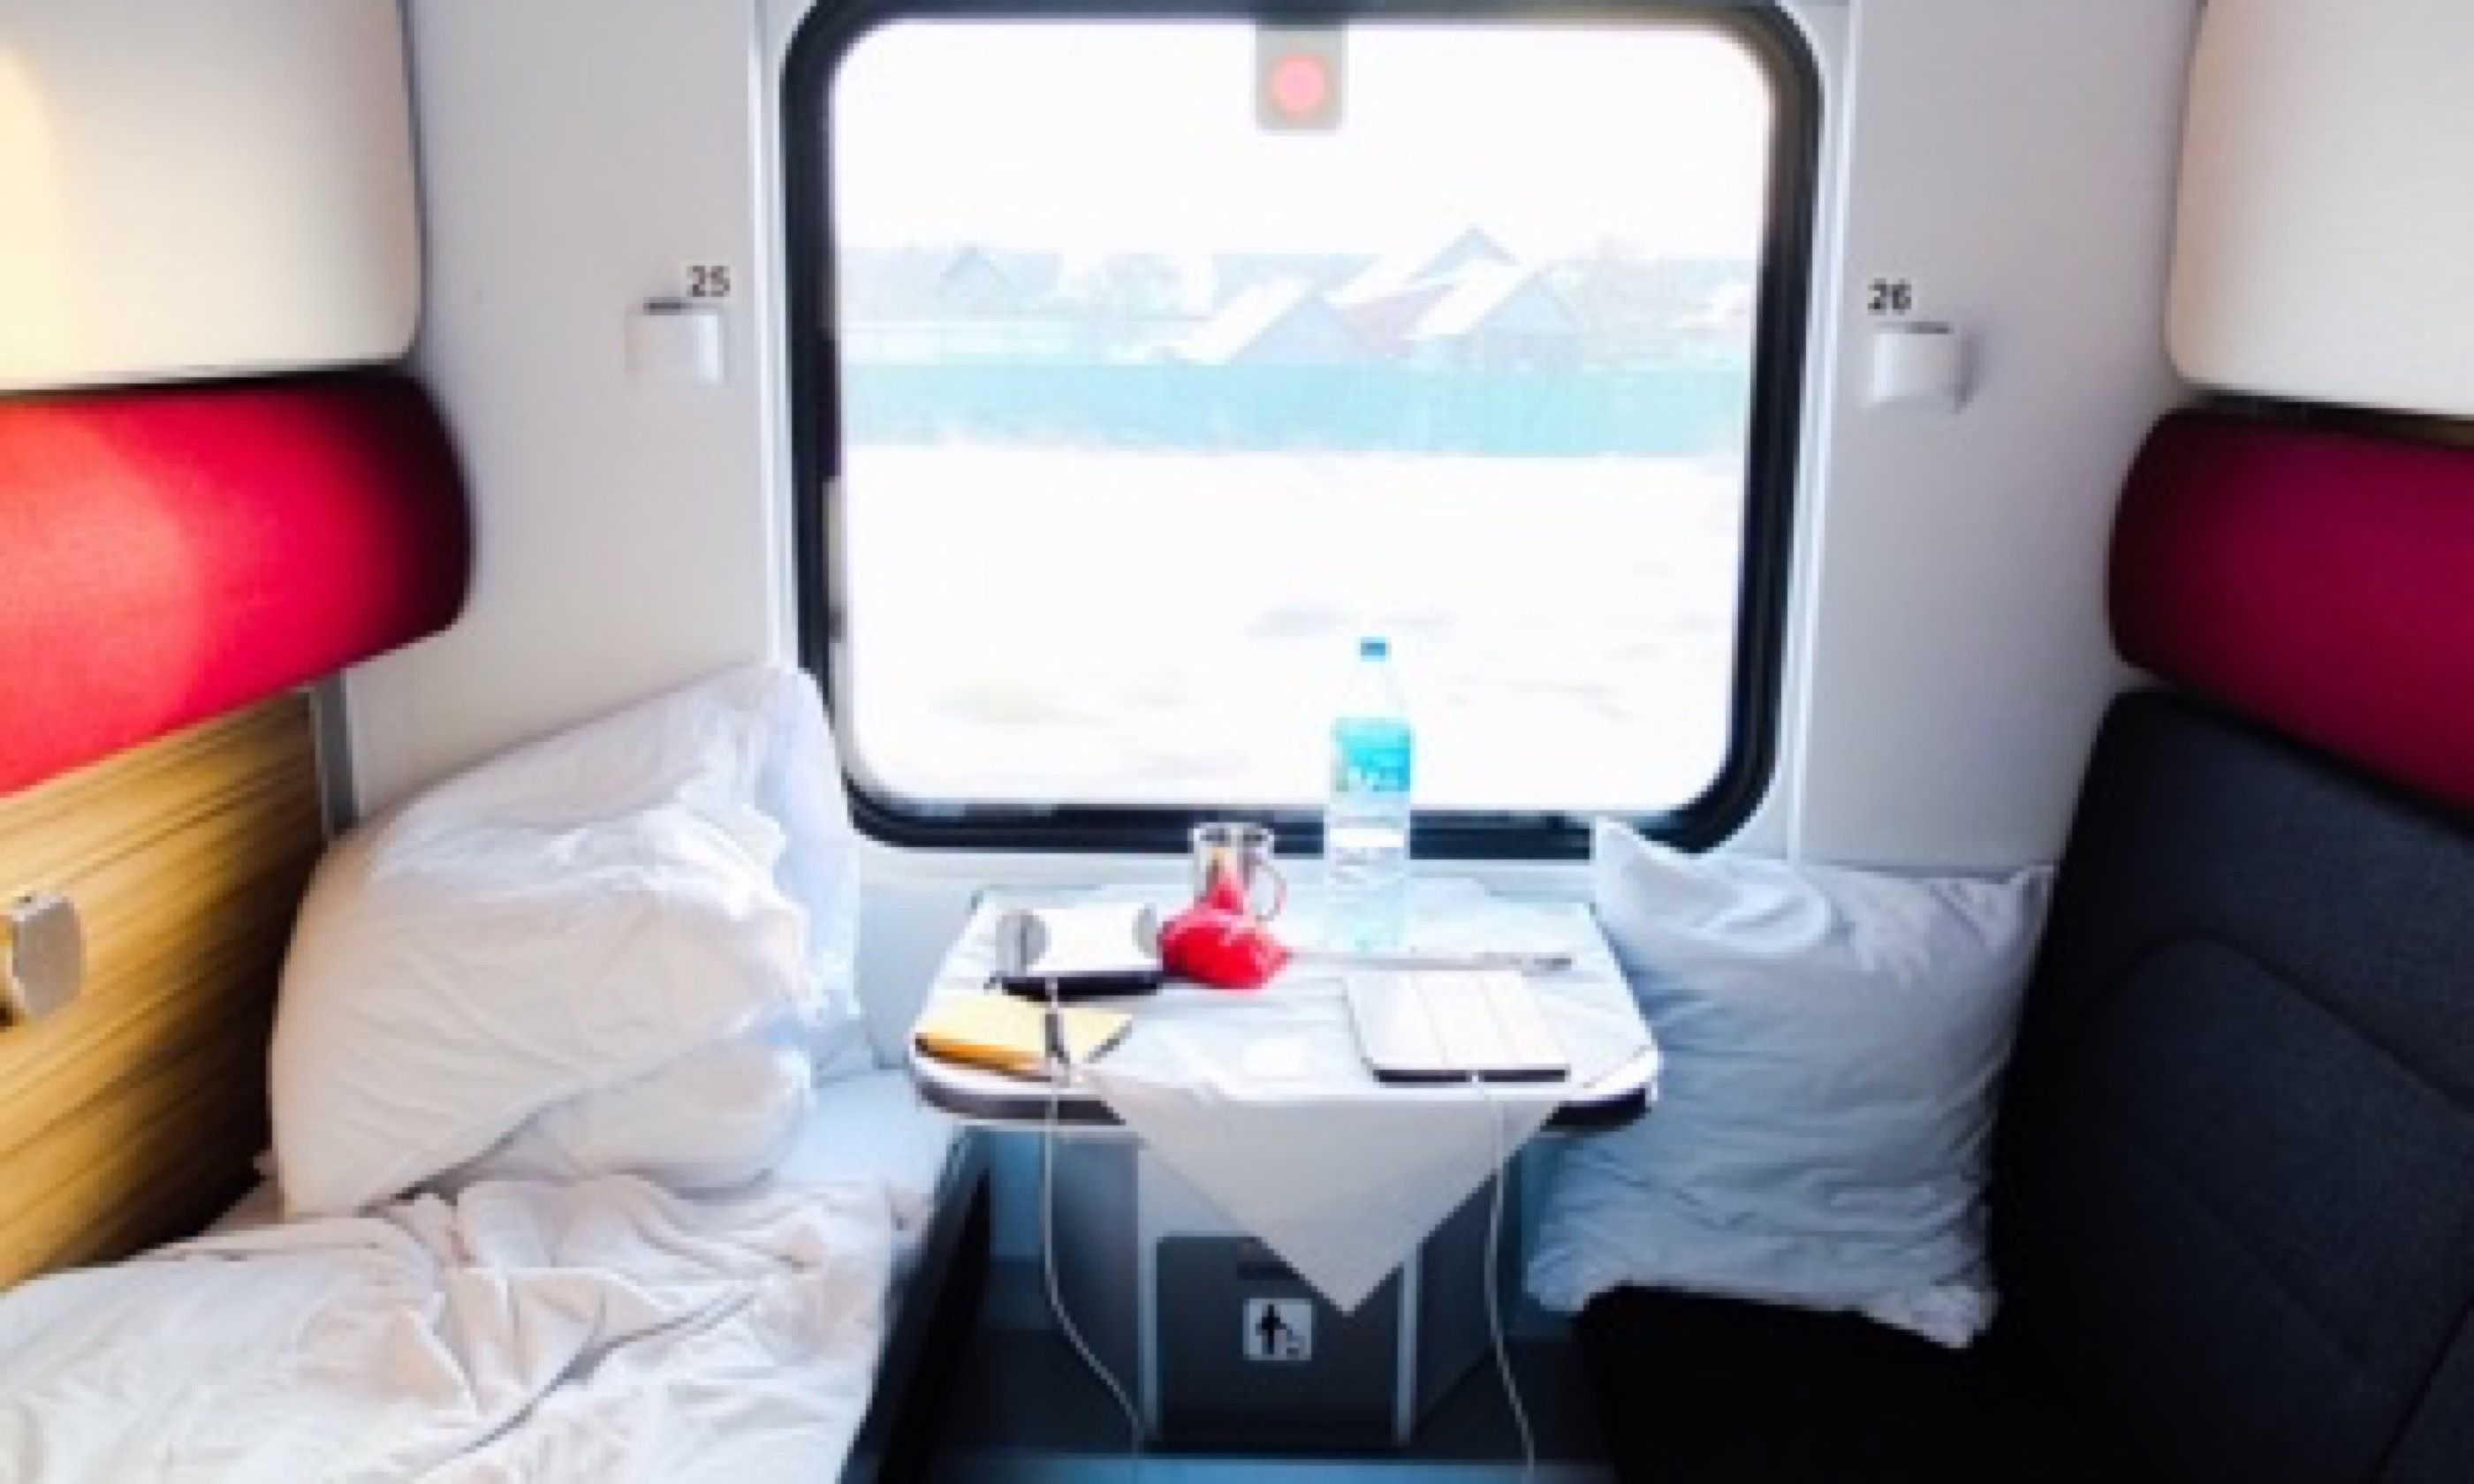 Cabin on the night train to Moscow (Matthew Woodward)